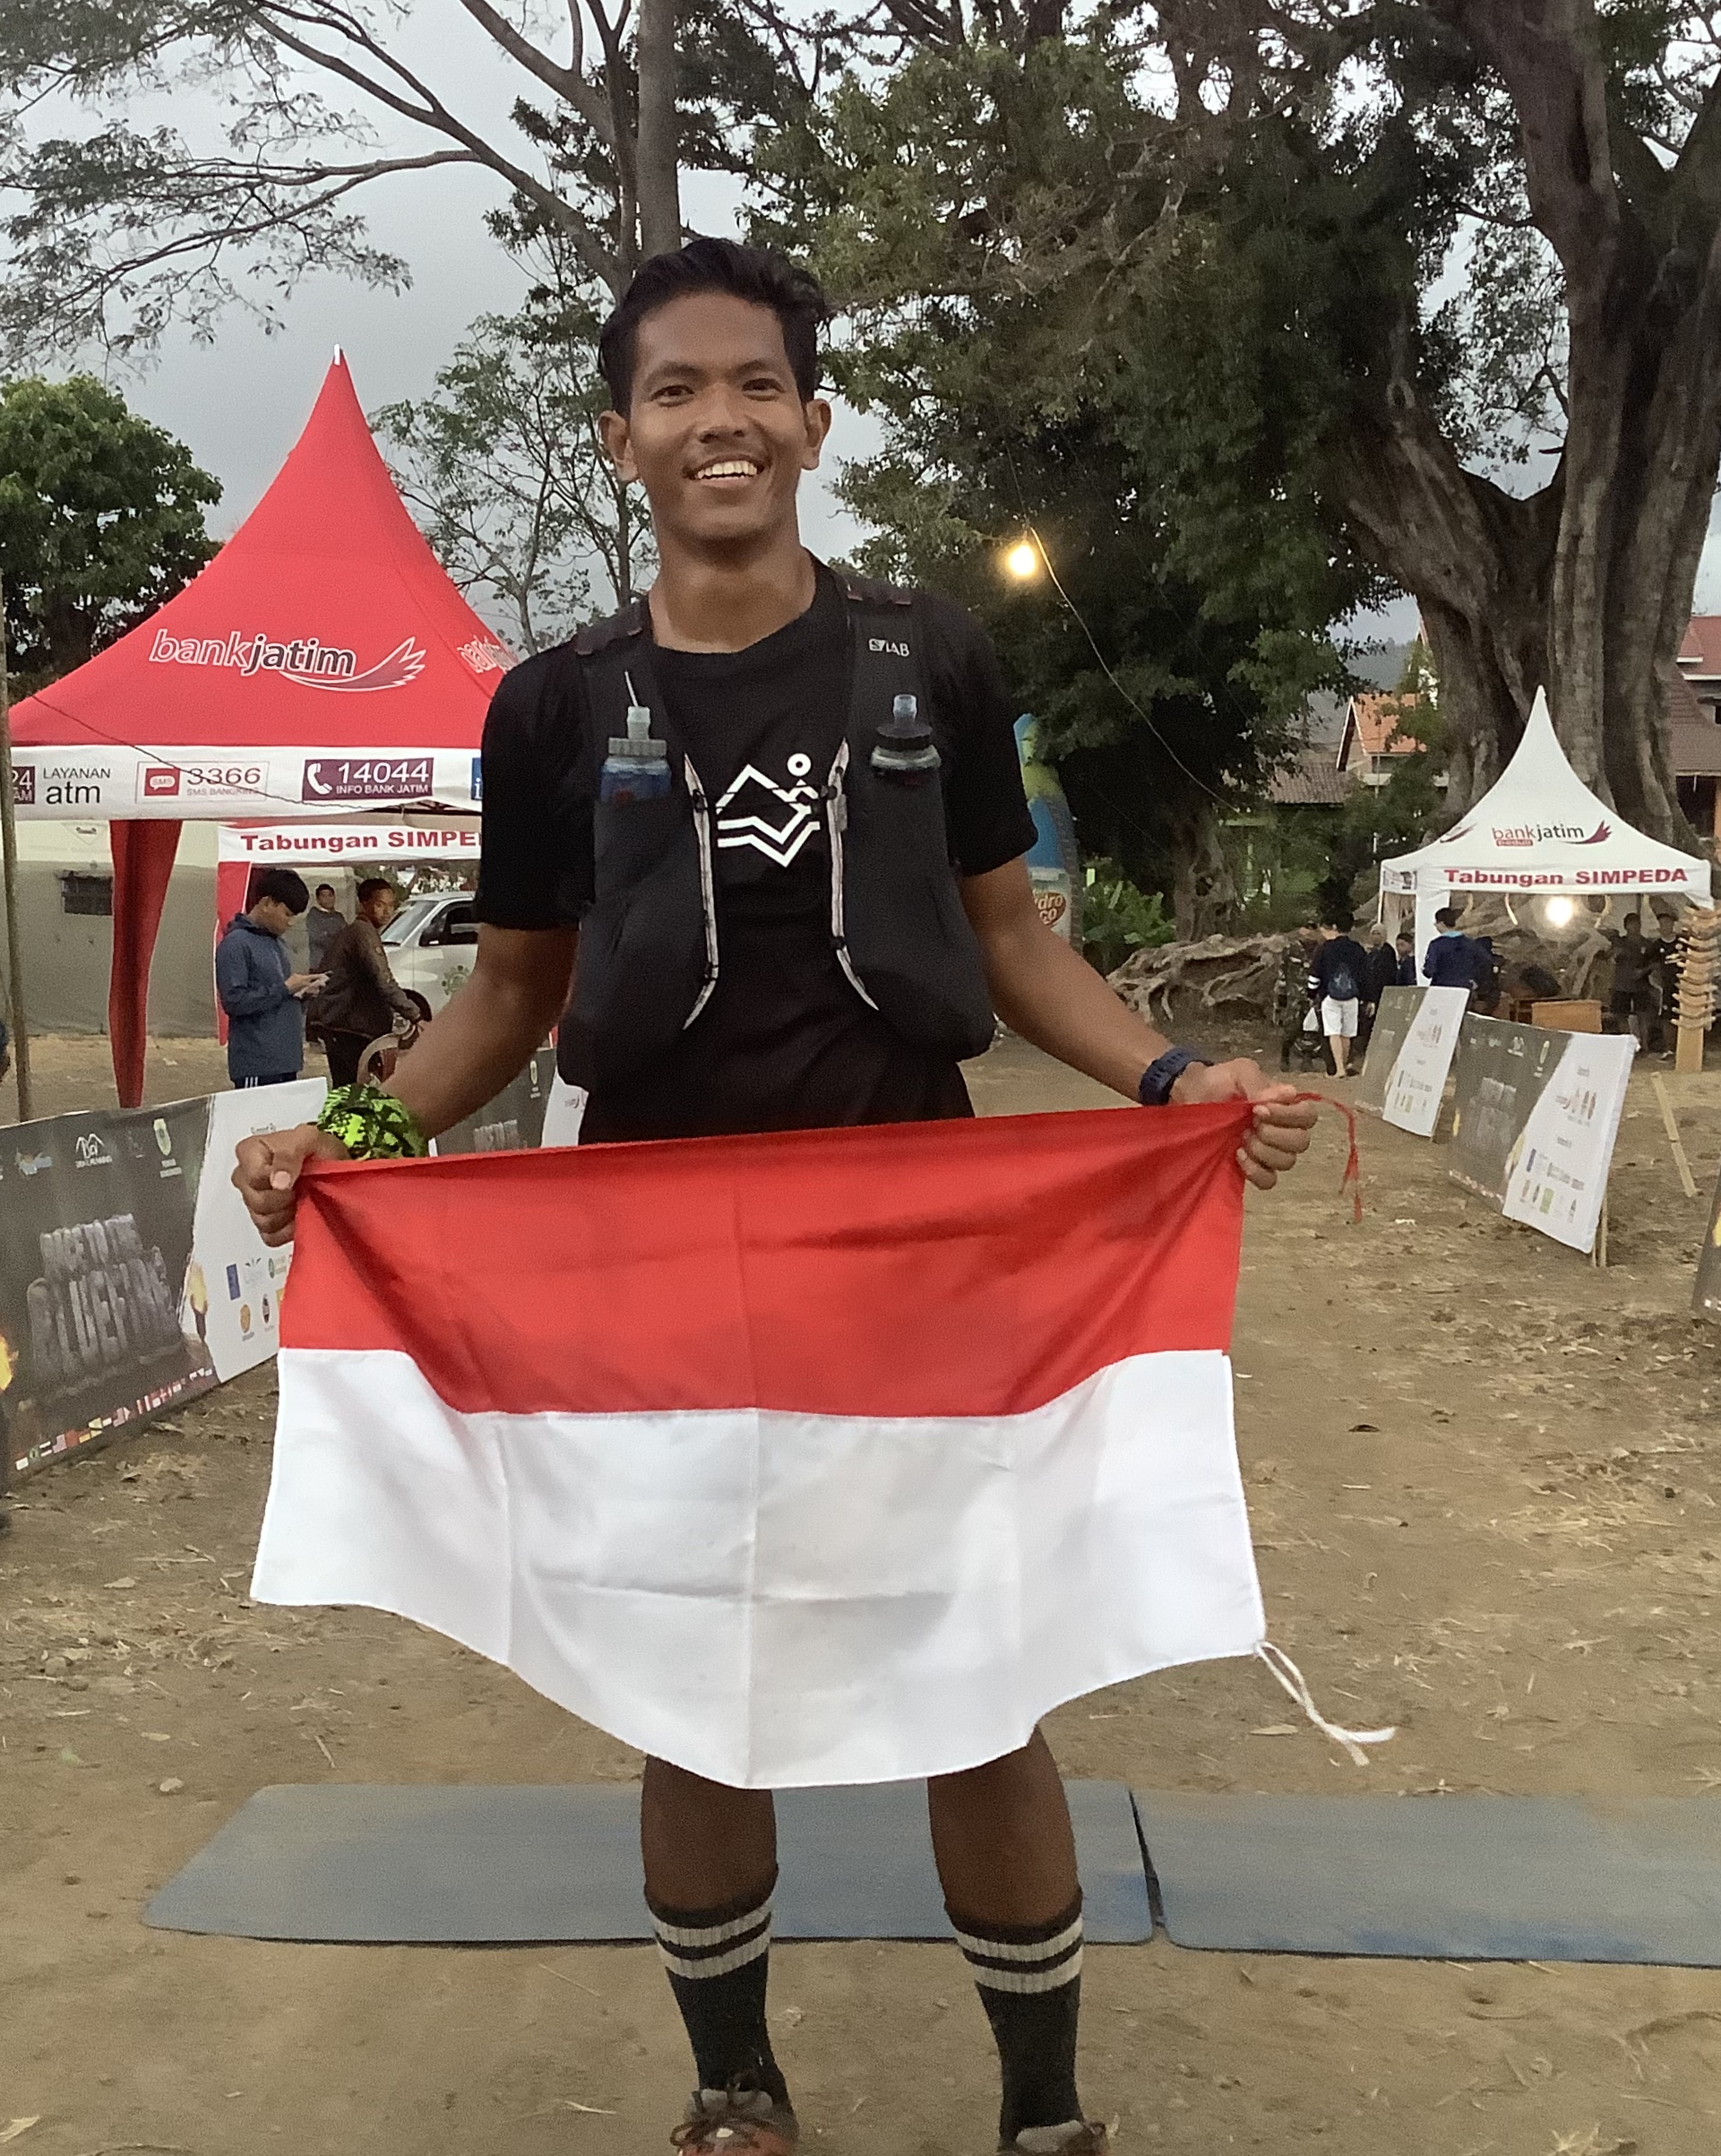 Rachmat Septiyanto is a welcome new face in high level Indonesian trail running. Coming from Solo.